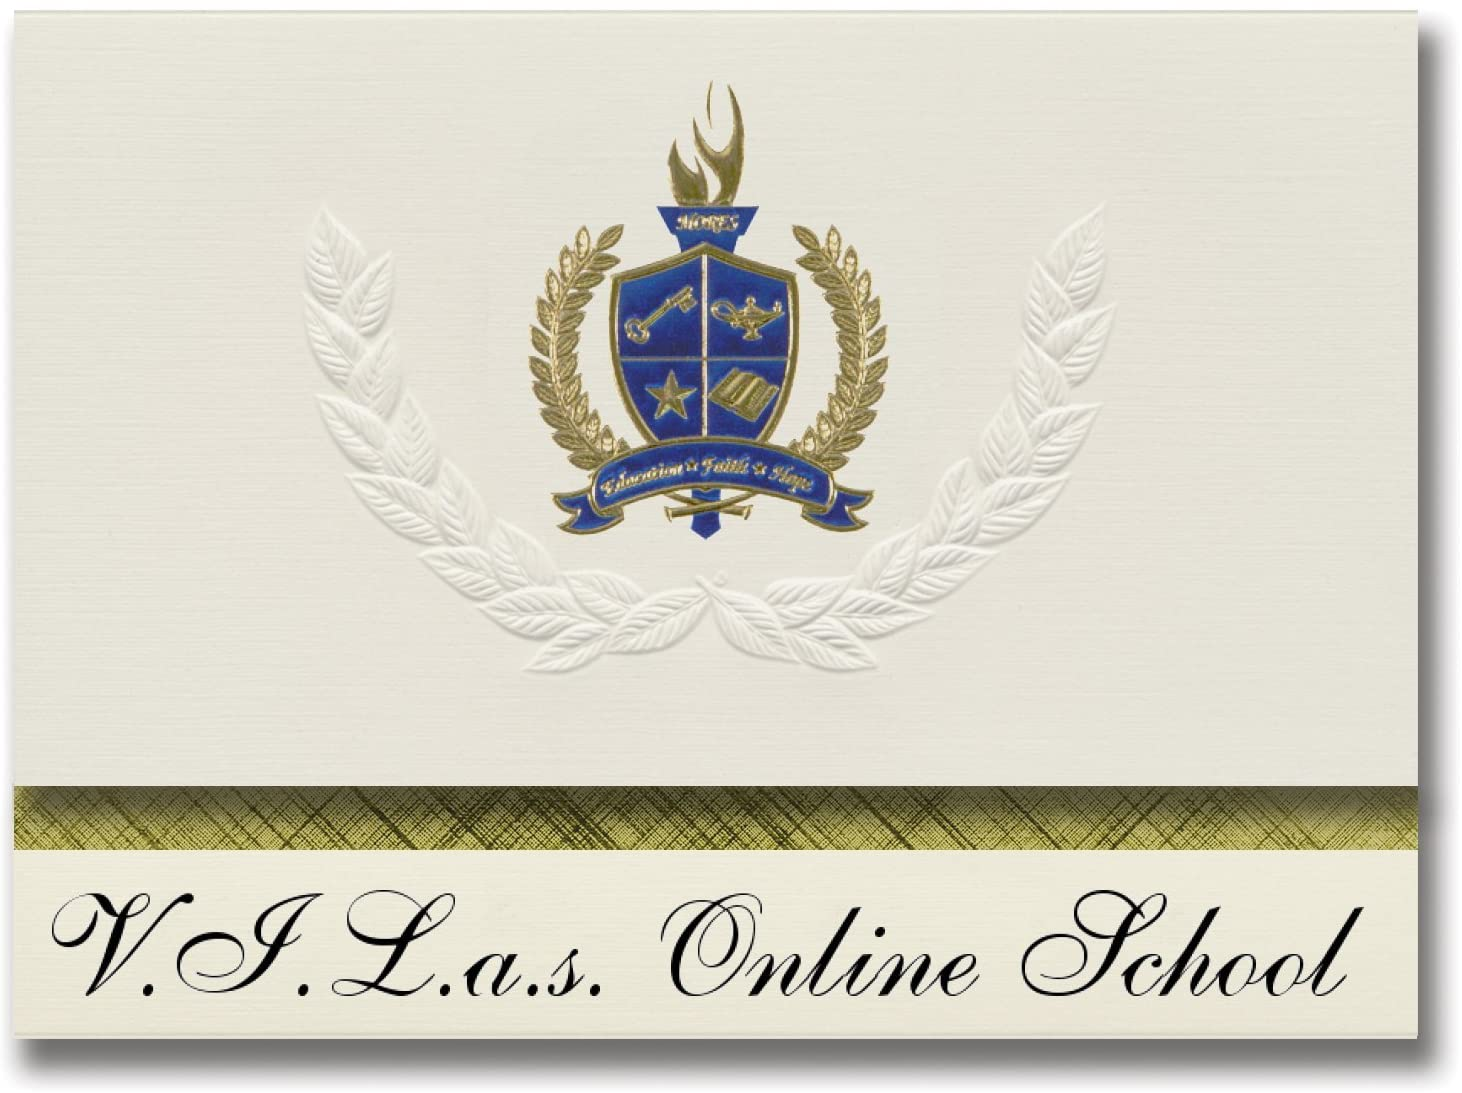 Signature Announcements V.I.L.a.s. Online School (Vilas, CO) Graduation Announcements, Presidential style, Basic package of 25 with Gold & Blue Metallic Foil seal